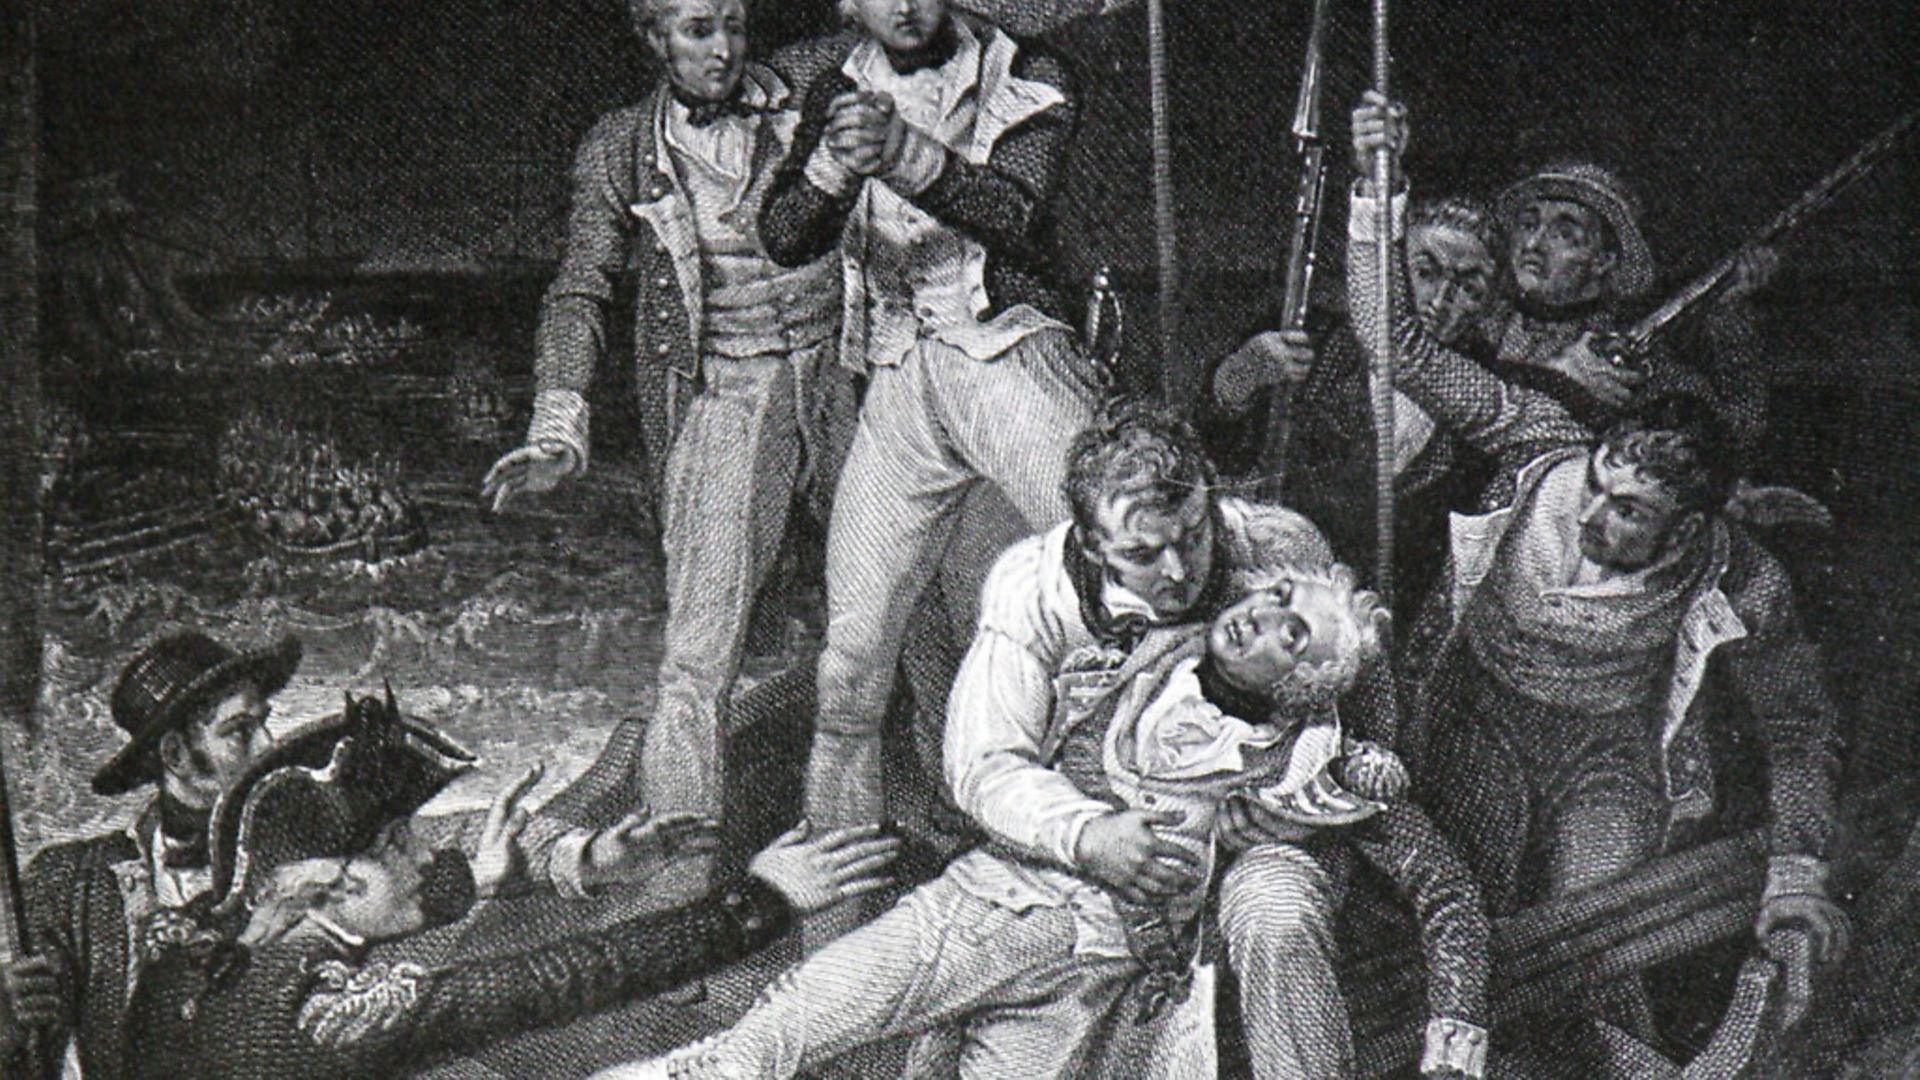 Nelson wounded at Tenerife, 24 July 1797. Engraving by J Neagle. A shot in the right elbow during the unsuccessful attack on Tenerife caused the amputation of Nelson's arm.. (Photo by Universal History Archive/Universal Images Group via Getty Images) - Credit: Universal Images Group via Getty